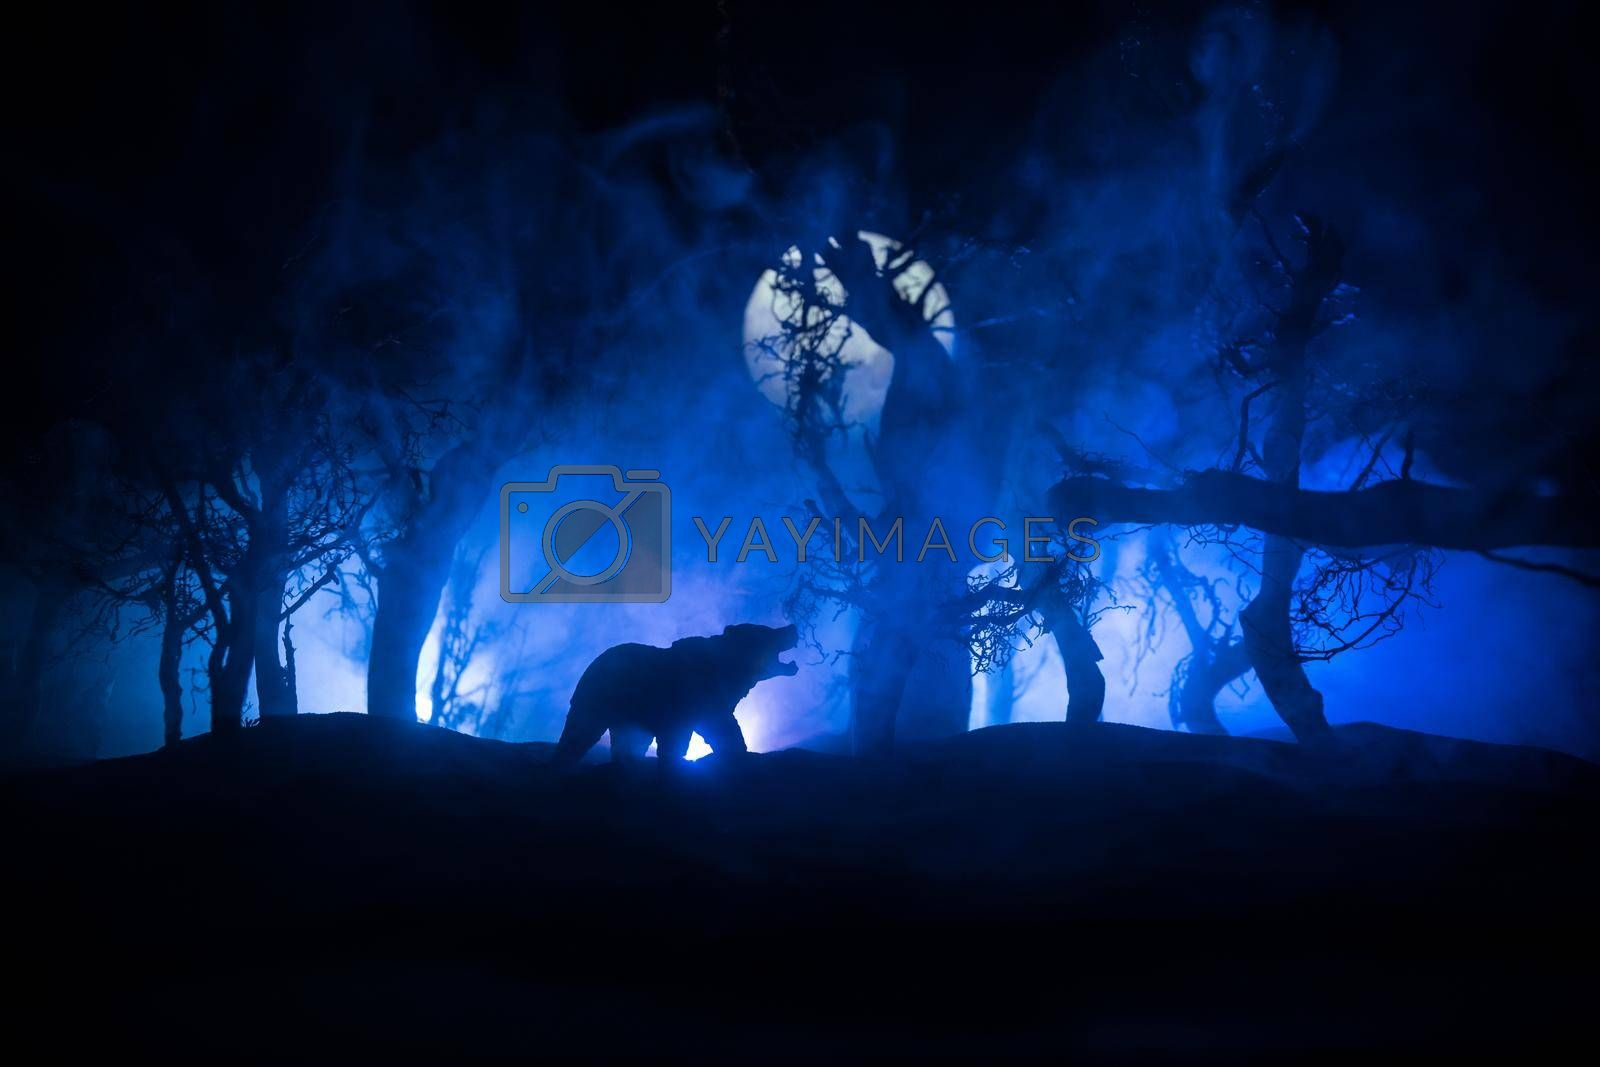 Horror view of big bear in dead forest at night. Angry bear behind the cold blue toned cloudy sky under moonlight. The silhouette of a bear in foggy forest dark background